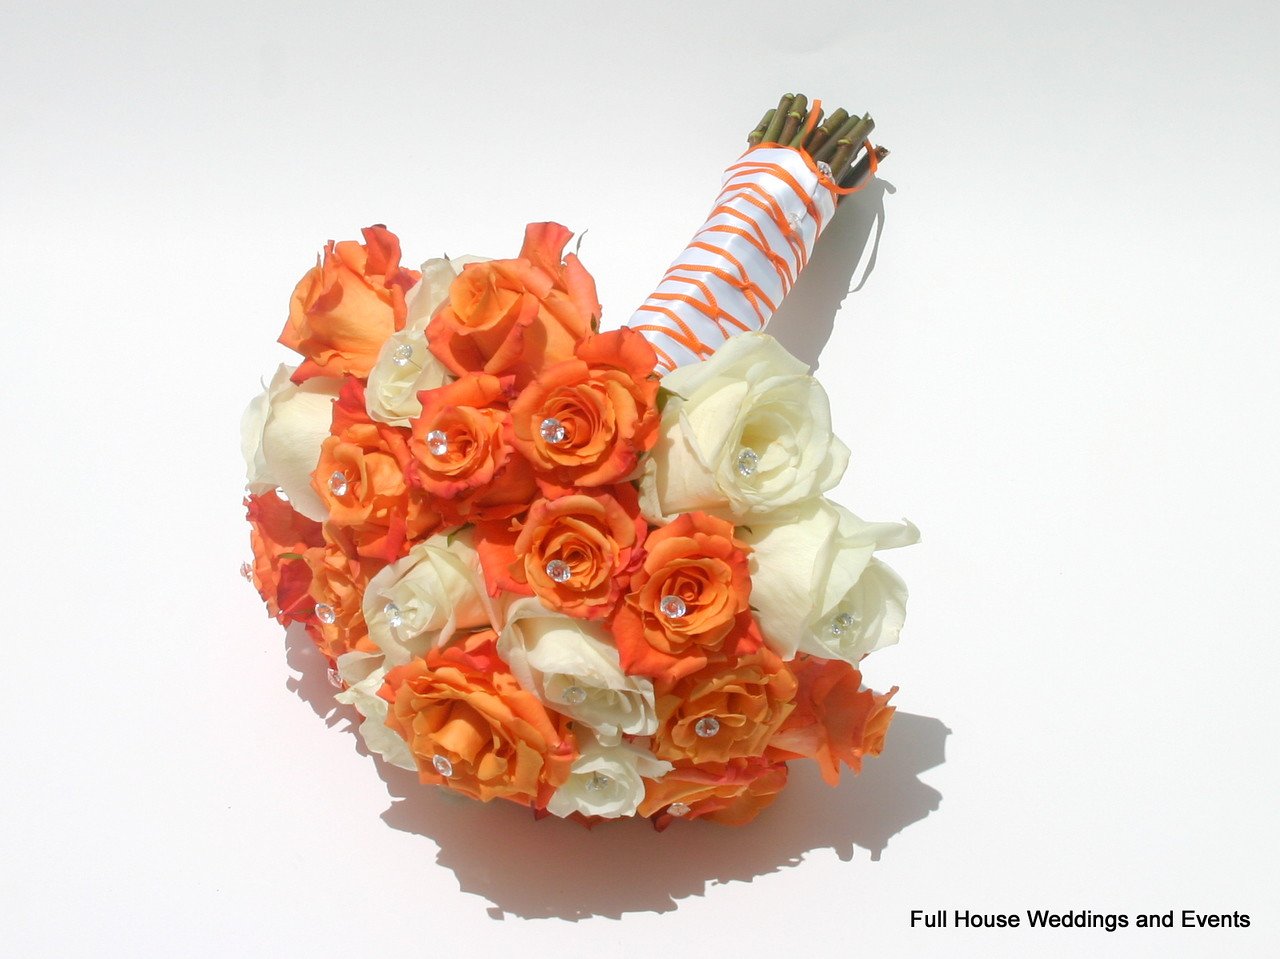 Bouquet - orange and ivory roses with white and orange satin wrap.